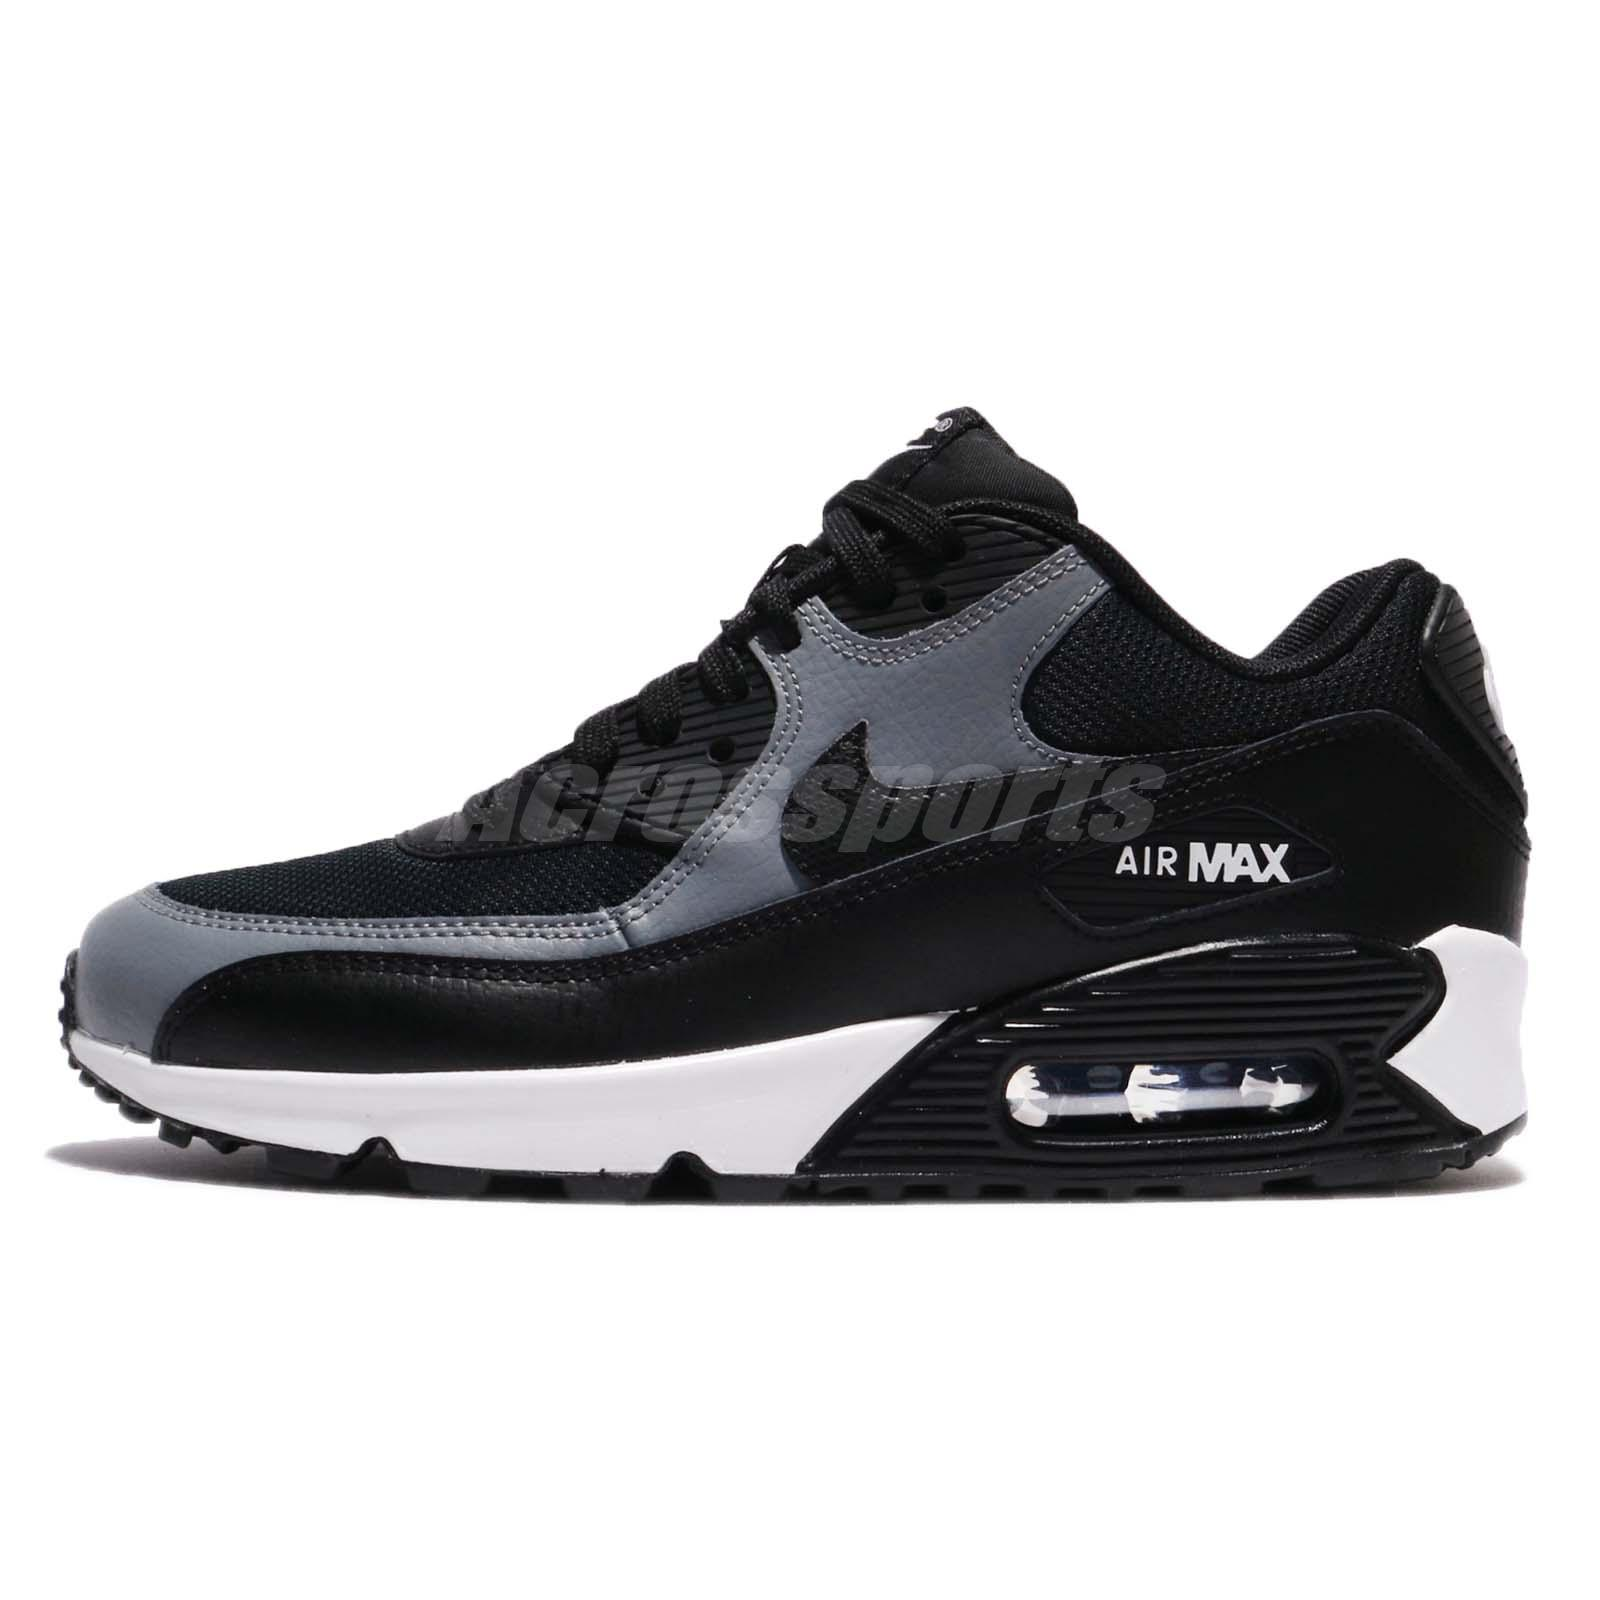 Nike WMNS Air Max 90 [325213-043] Women Casual Shoes Triple Black/Black